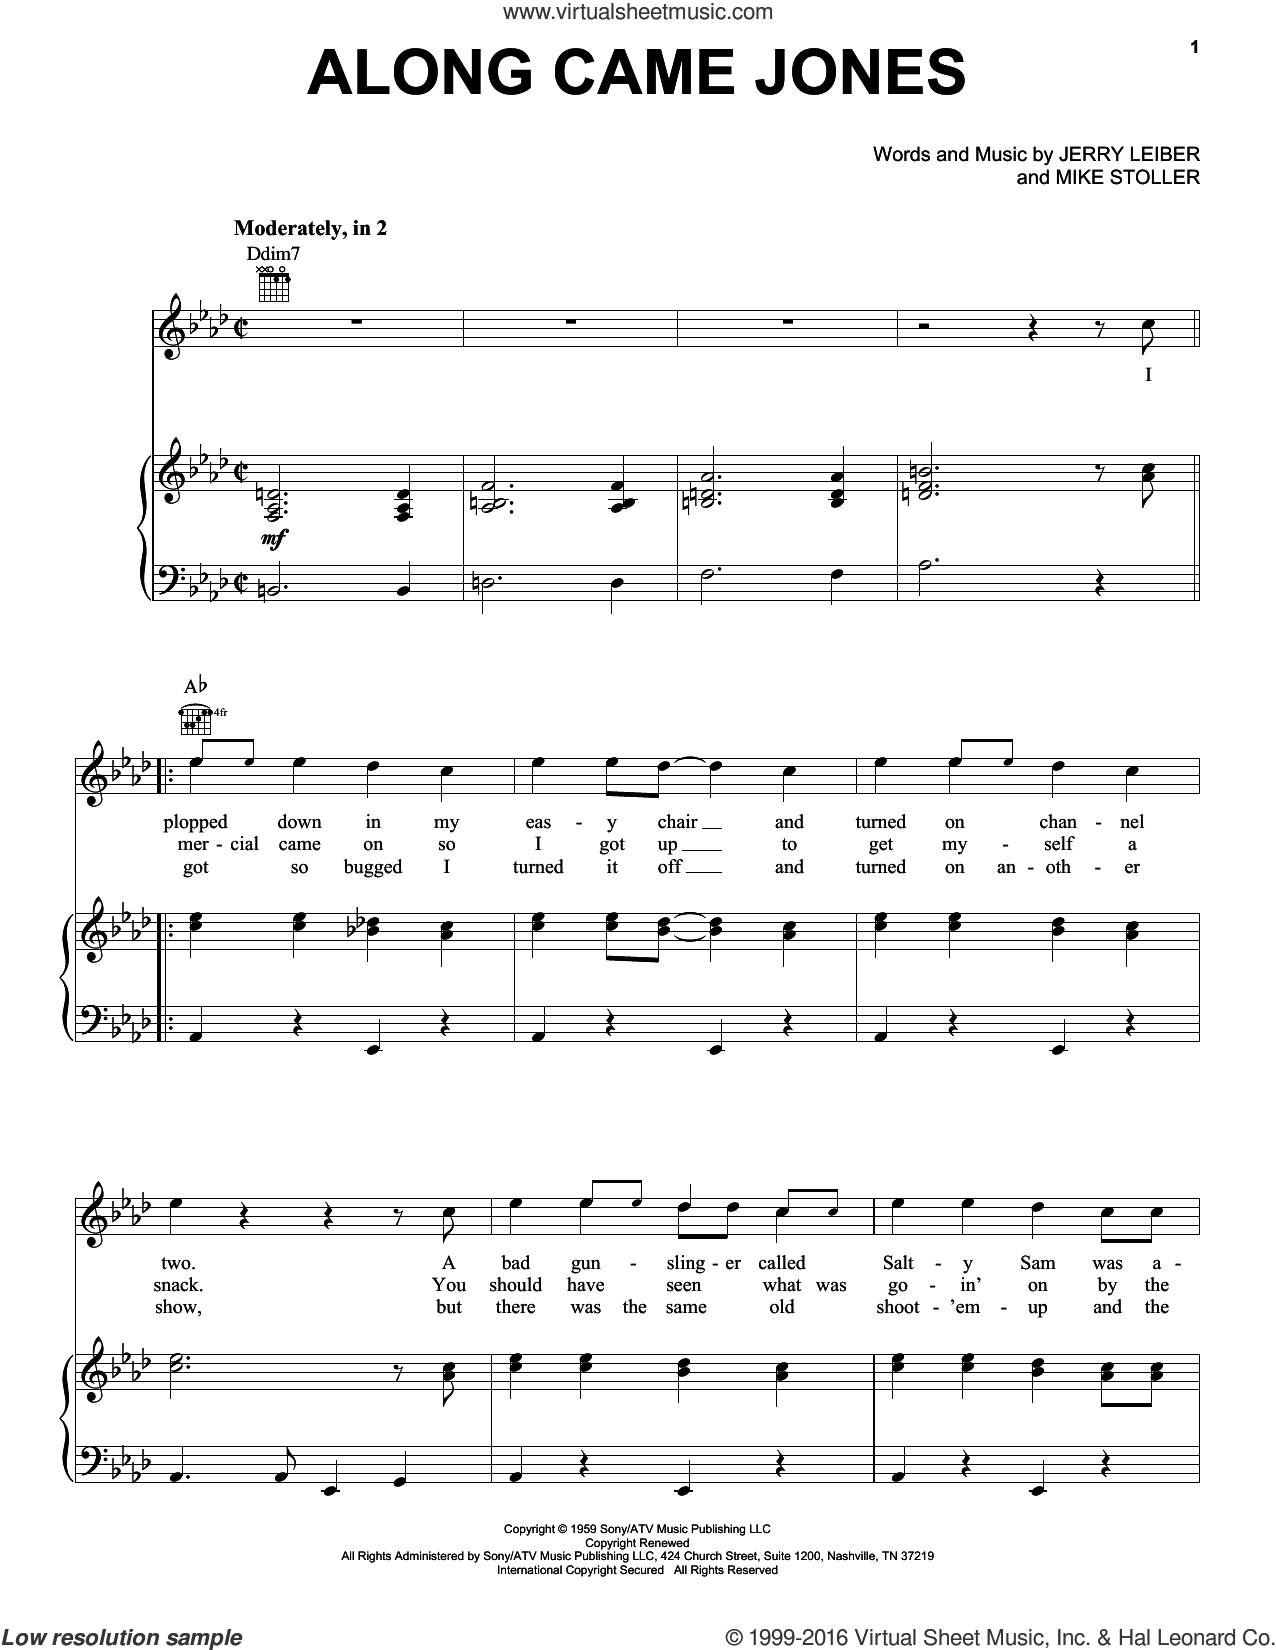 Along Came Jones sheet music for voice, piano or guitar by The Coasters, Leiber & Stoller, Jerry Leiber and Mike Stoller, intermediate skill level